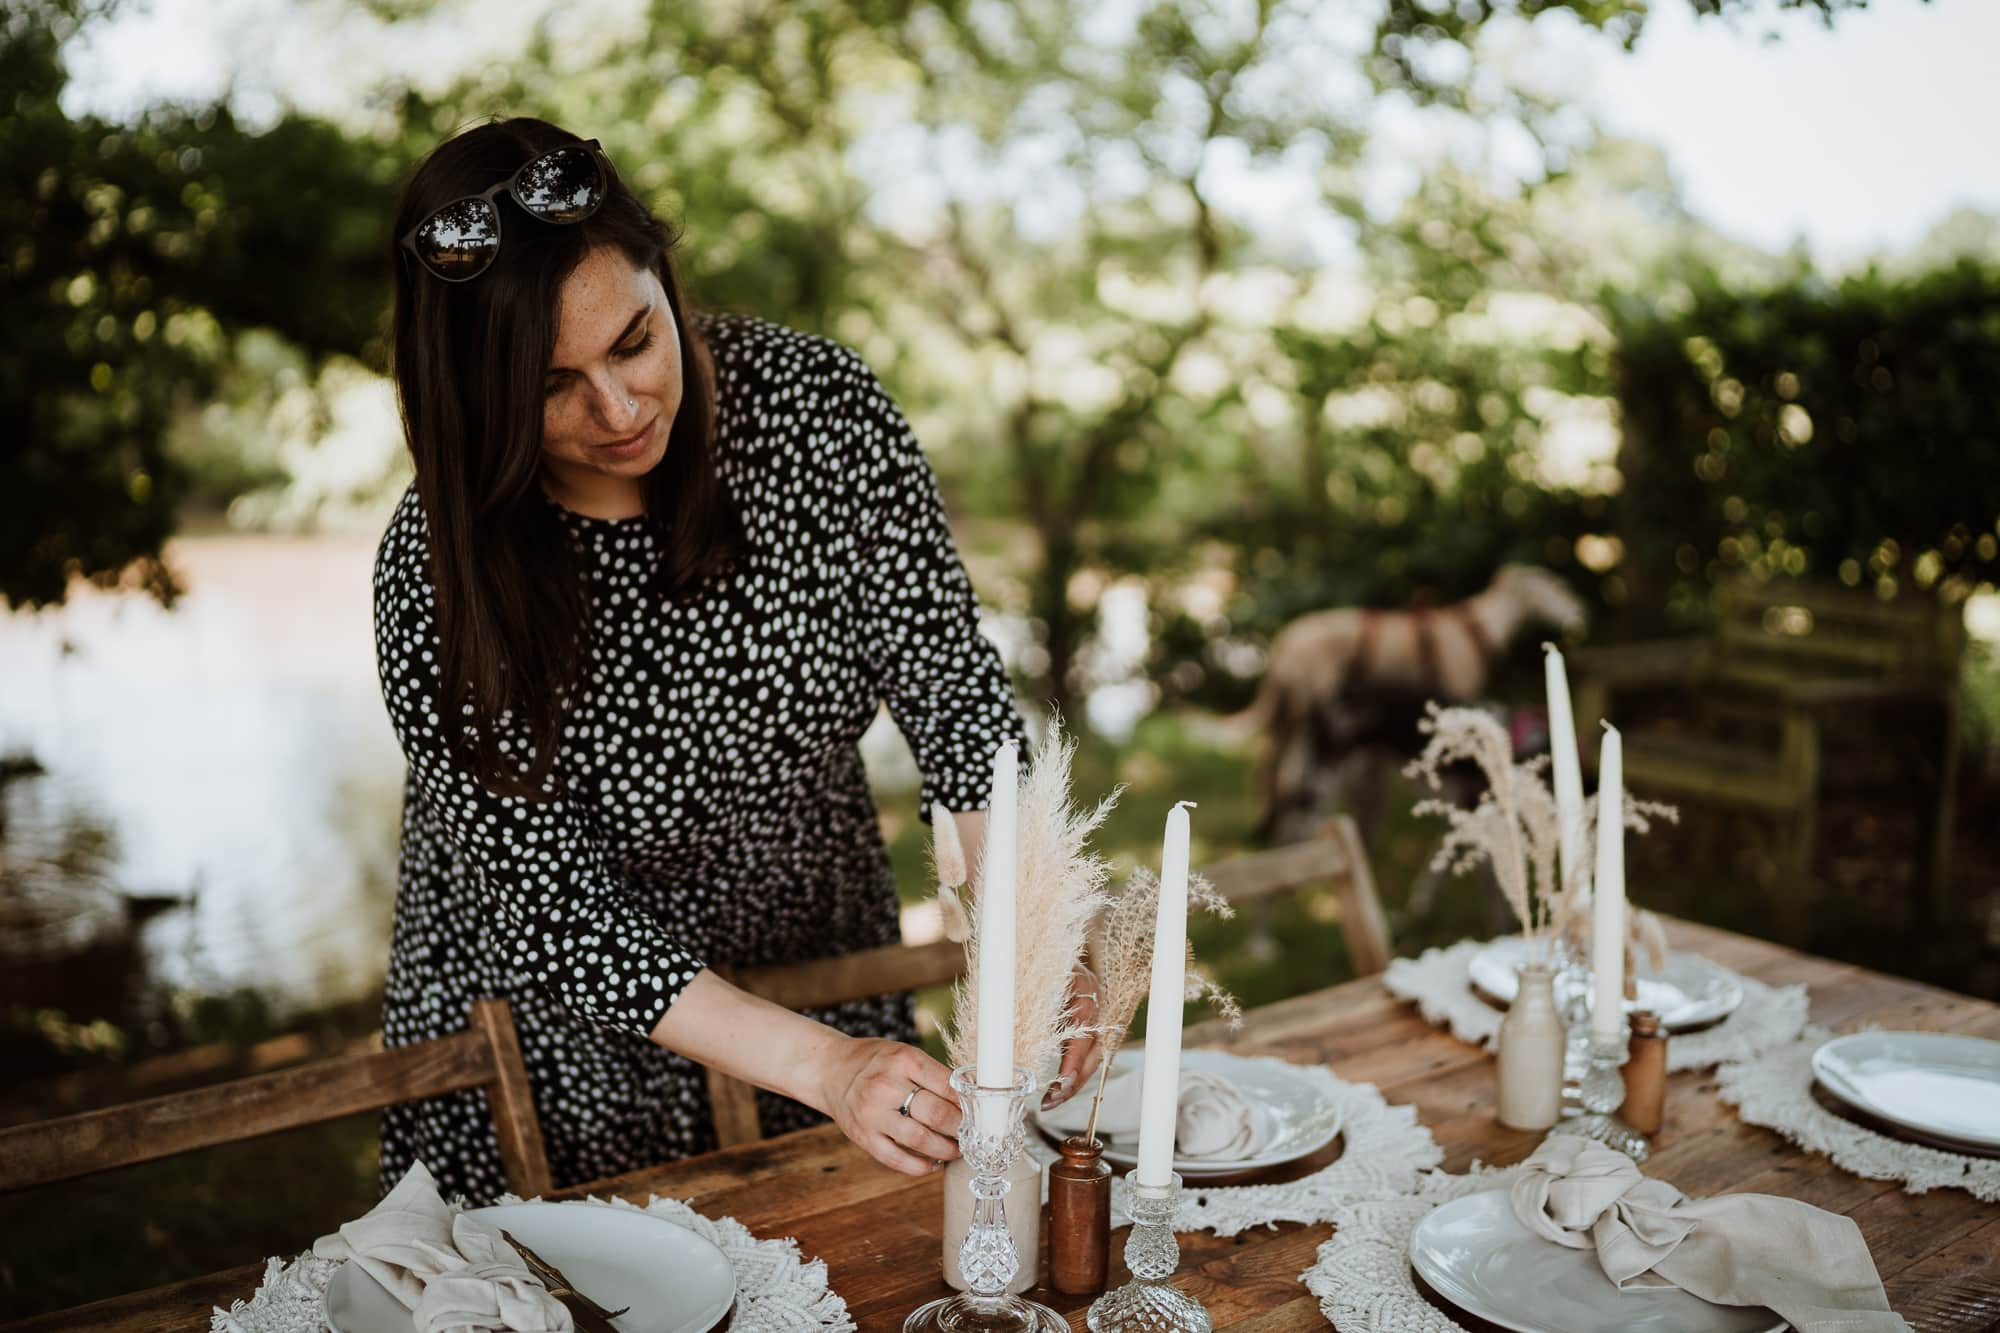 Kent wedding supplier the little wedding warehouse setting a rustic wedding table in woodland setting